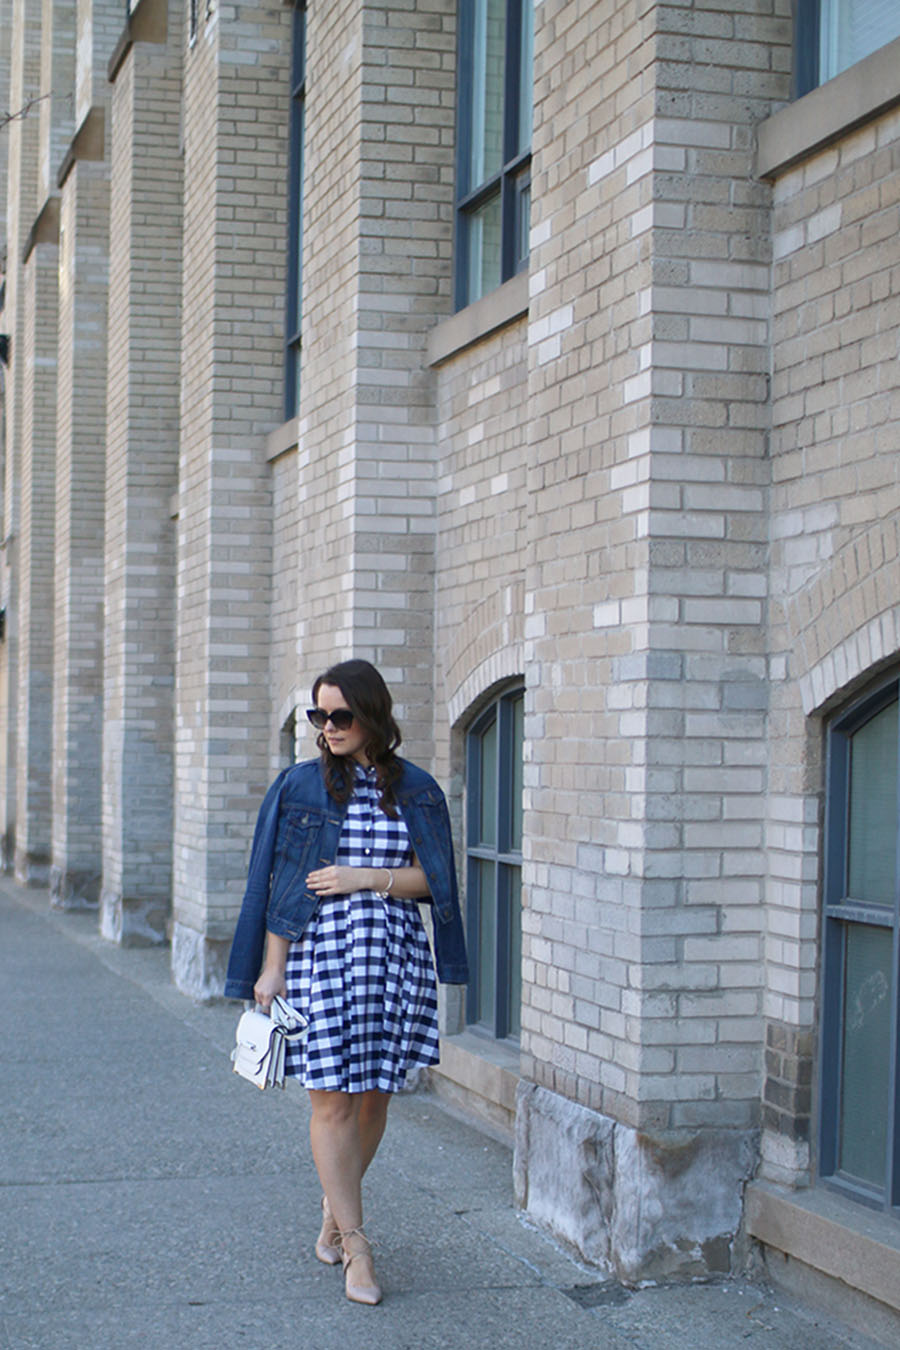 Gingham, CAsual Summer Dresses, Fashion Blogger